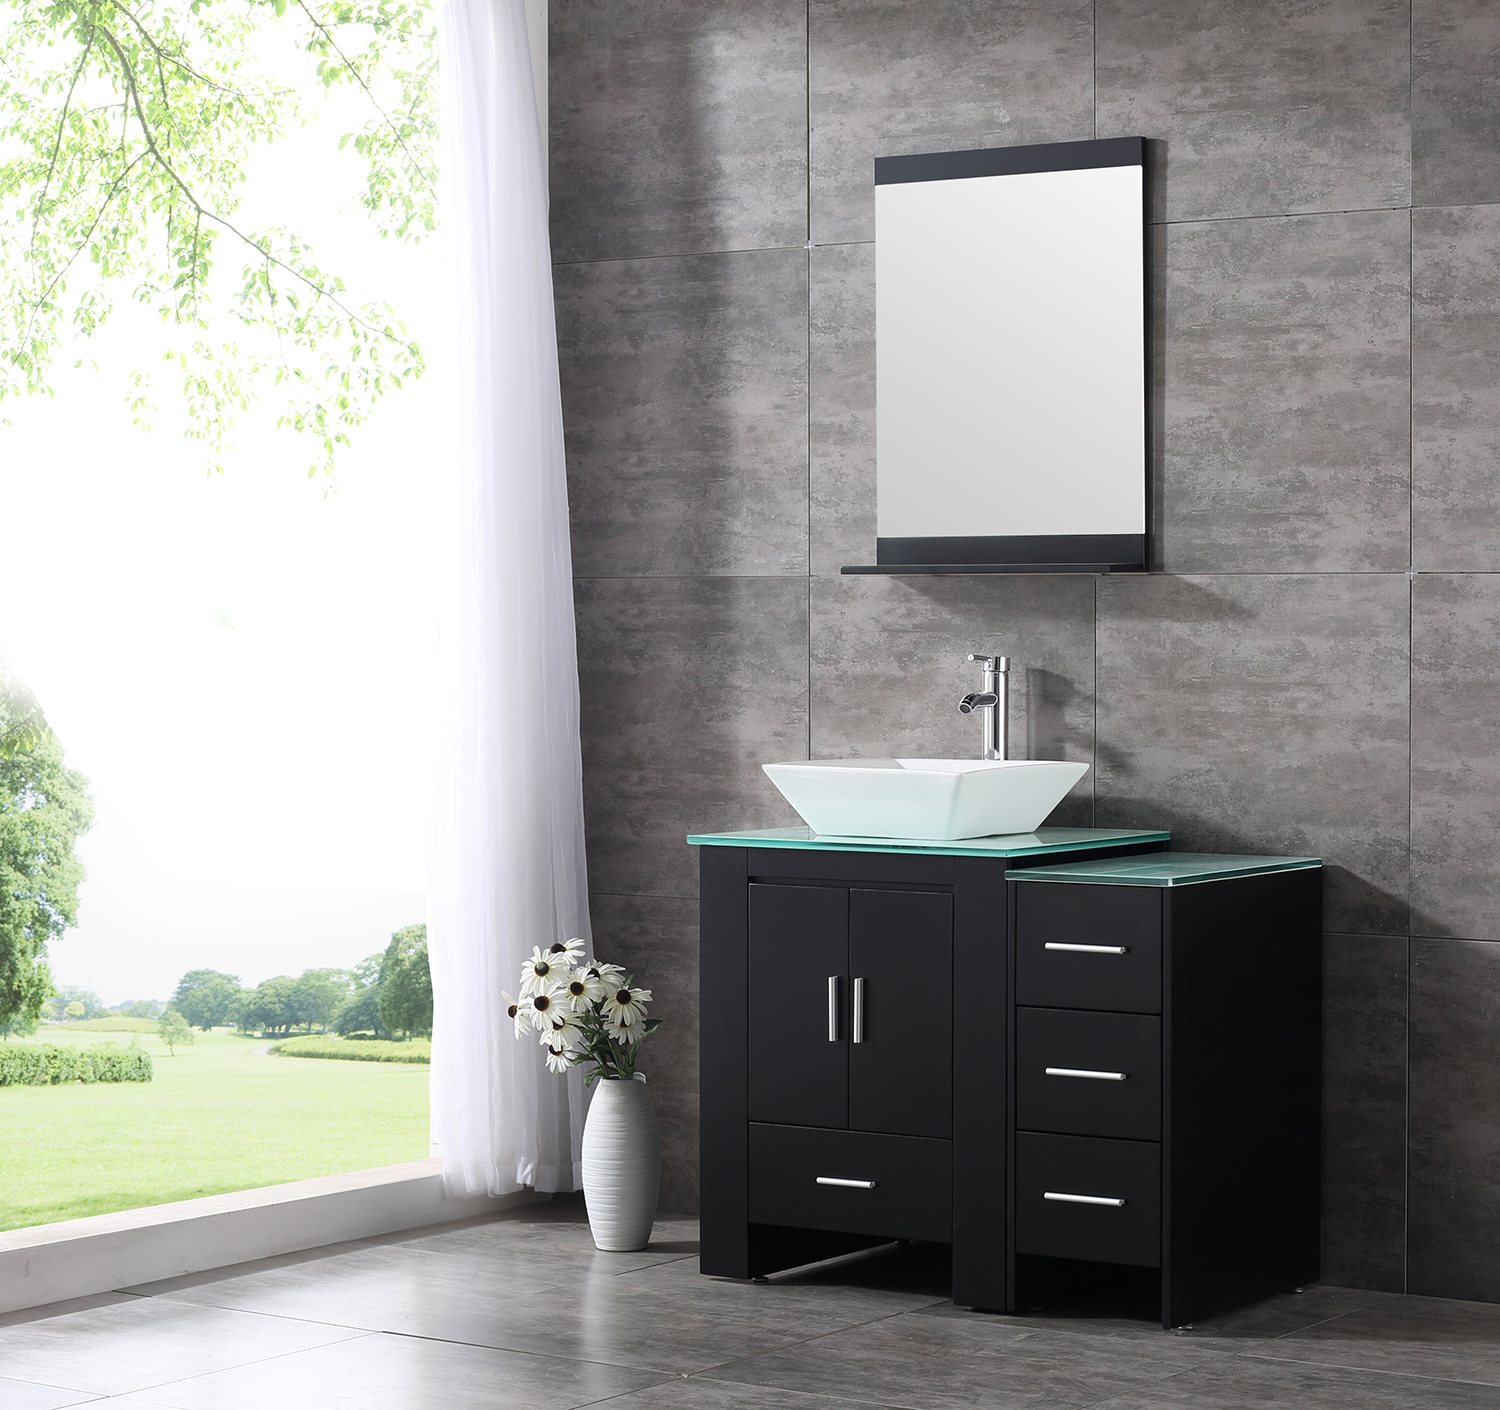 Superieur 36inch Black Bathroom Vanity Cabinet Top Single Vessel Sink And Faucet Combo